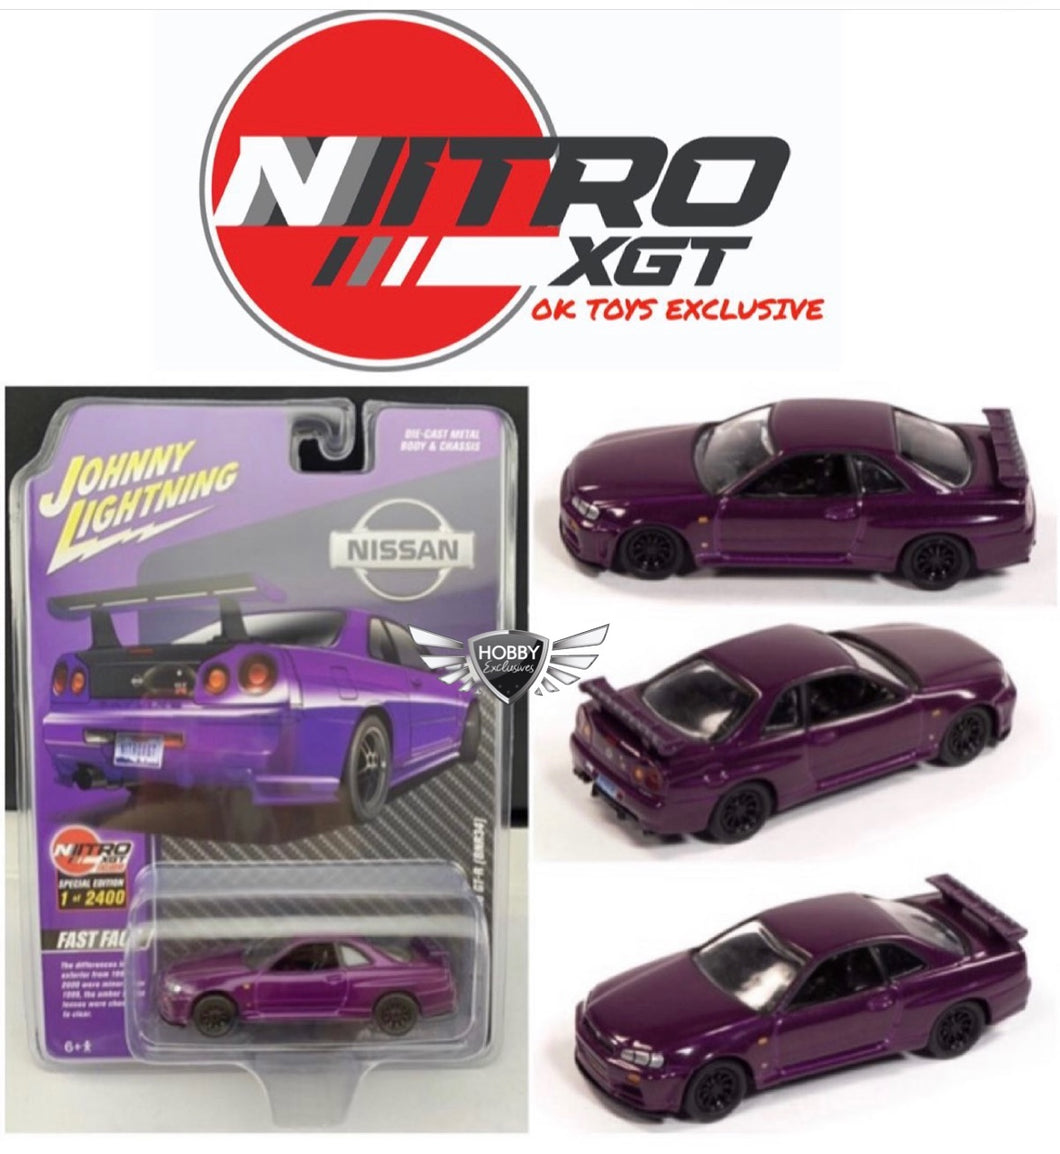 Pre-Order Nitro XGT Nissan Skyline GT-R BNR34 Johnny Lightning Okay Toys Exclusive